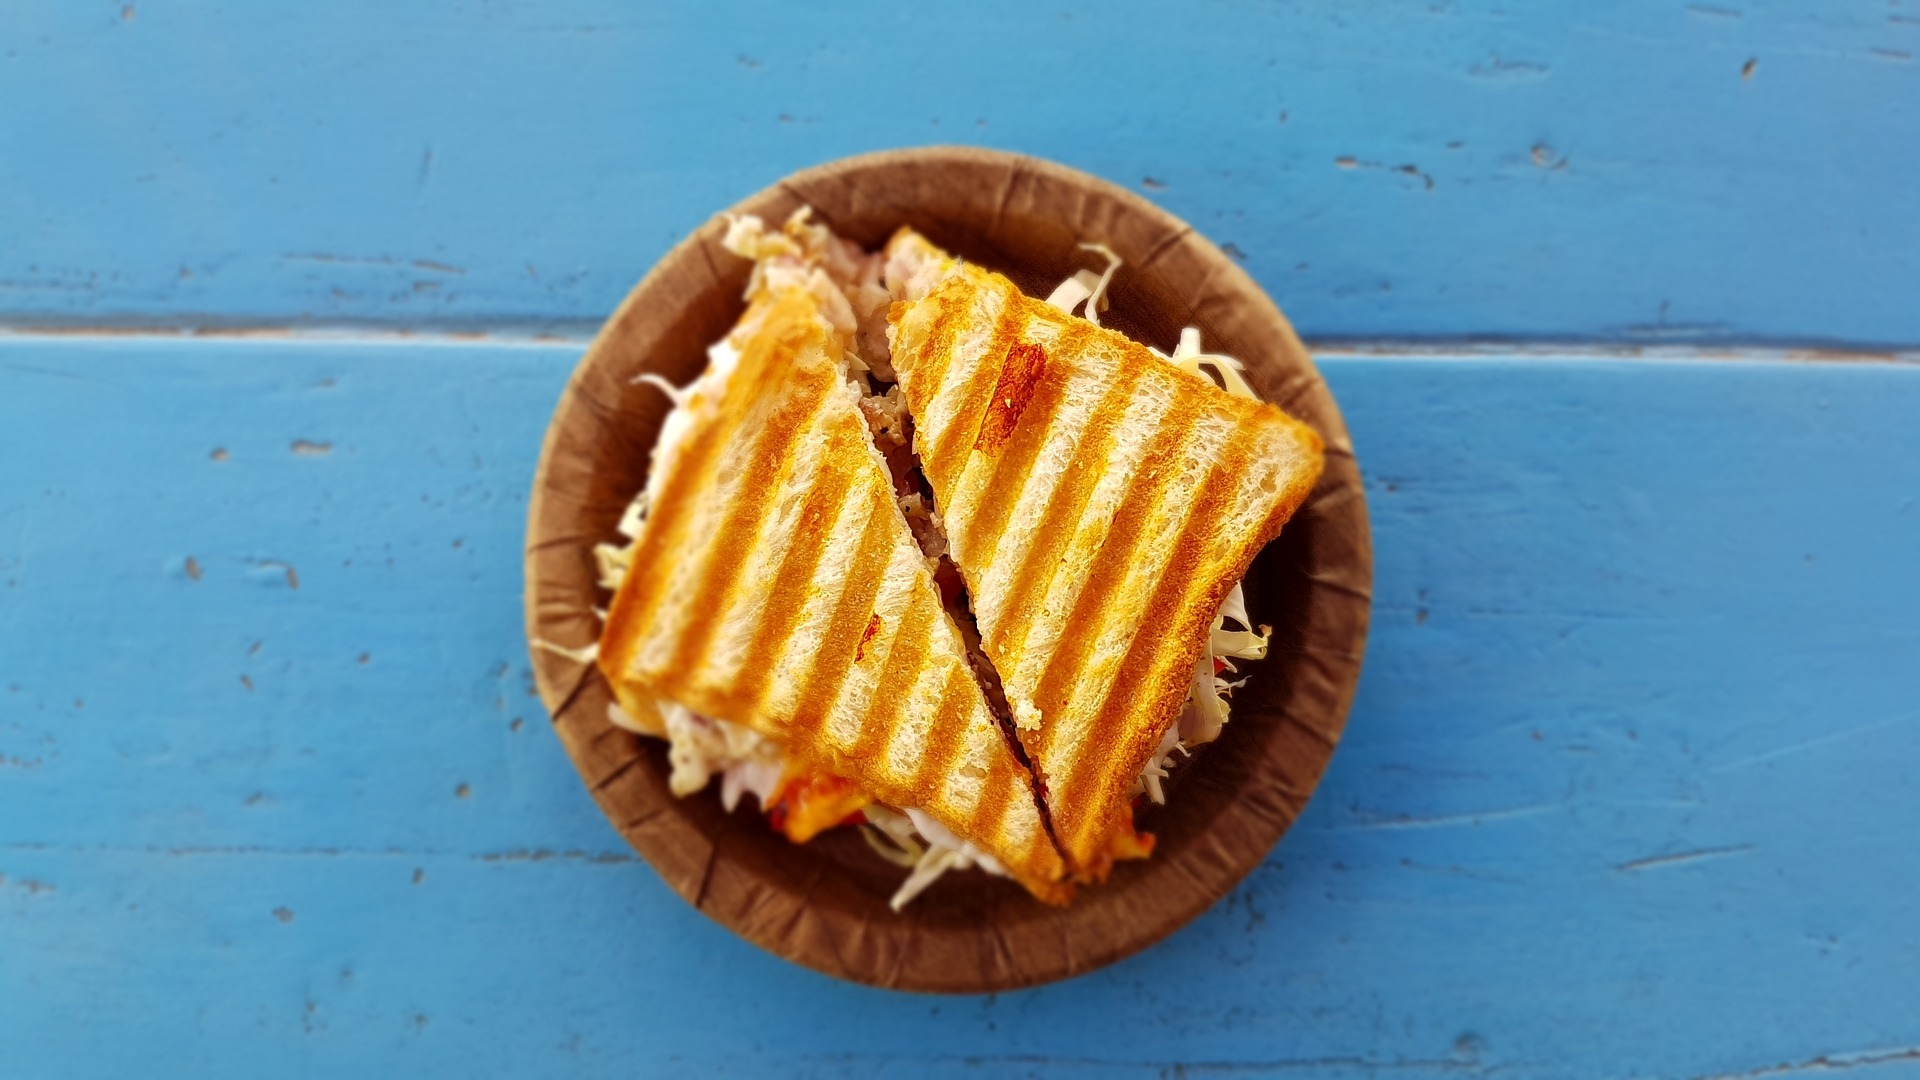 Image of Toasted Sandwich